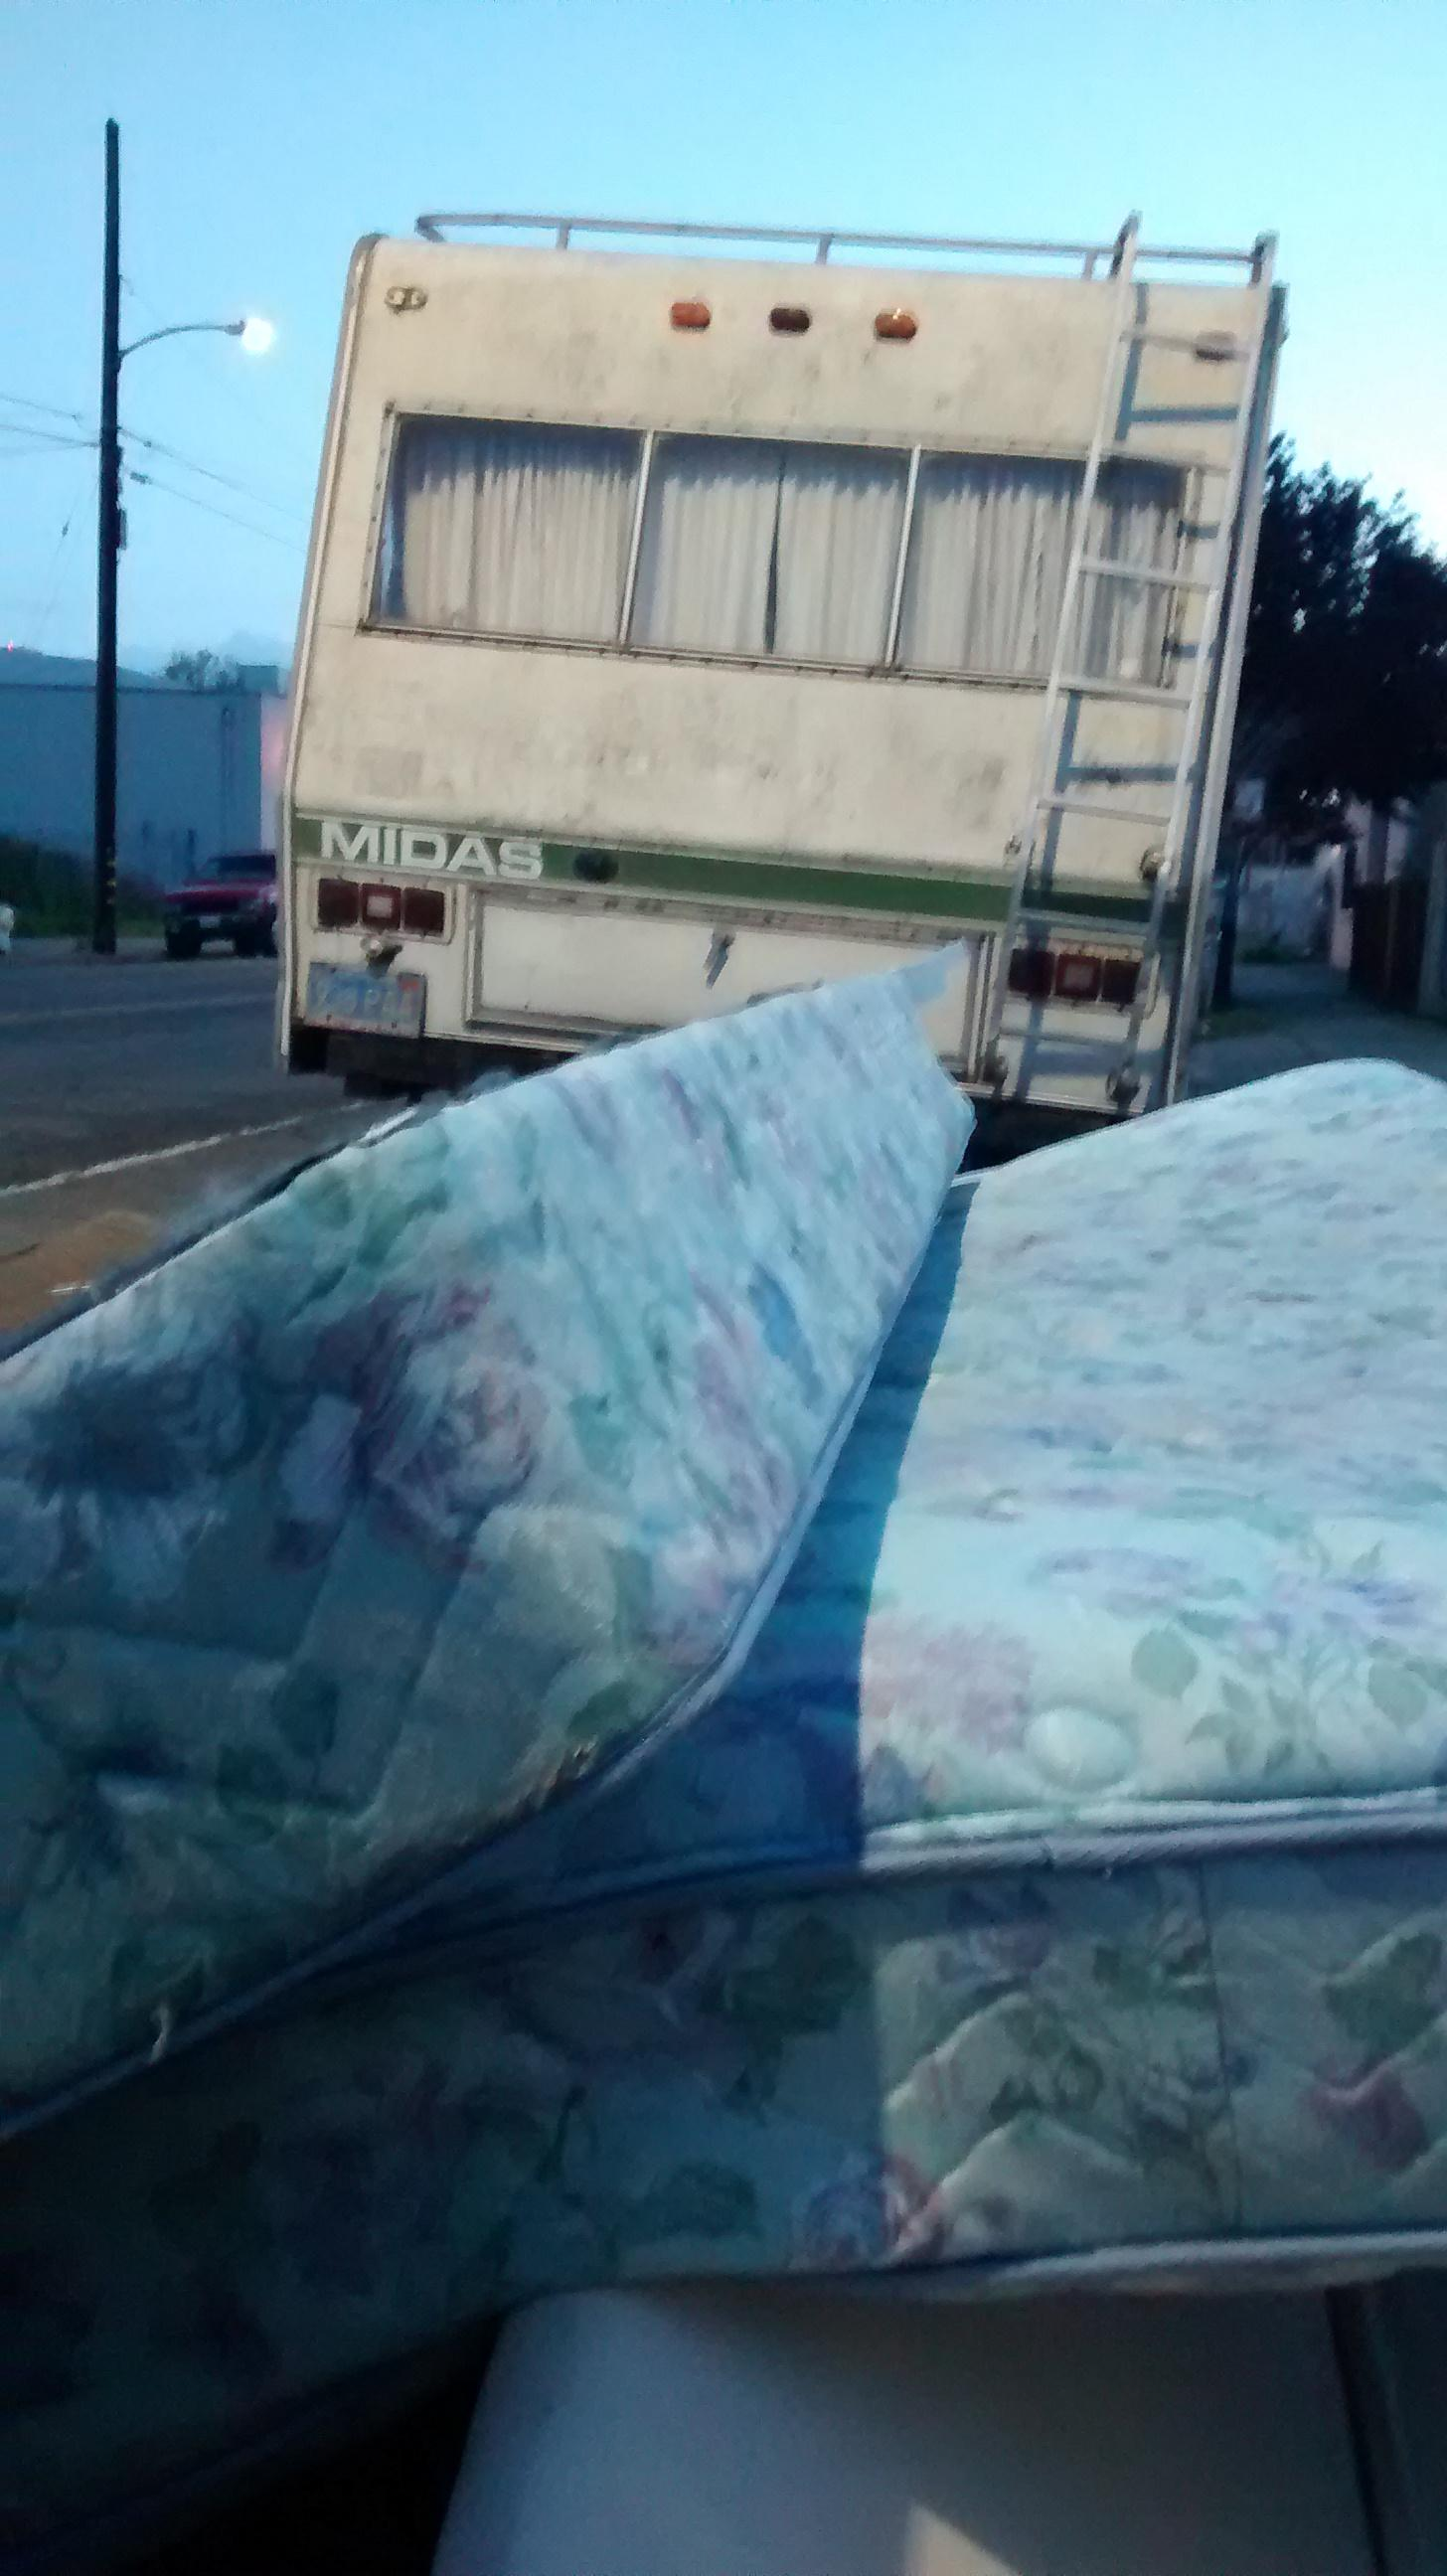 Caption: A mountain of mattresses in West Oakland, Credit: Todd Whitney